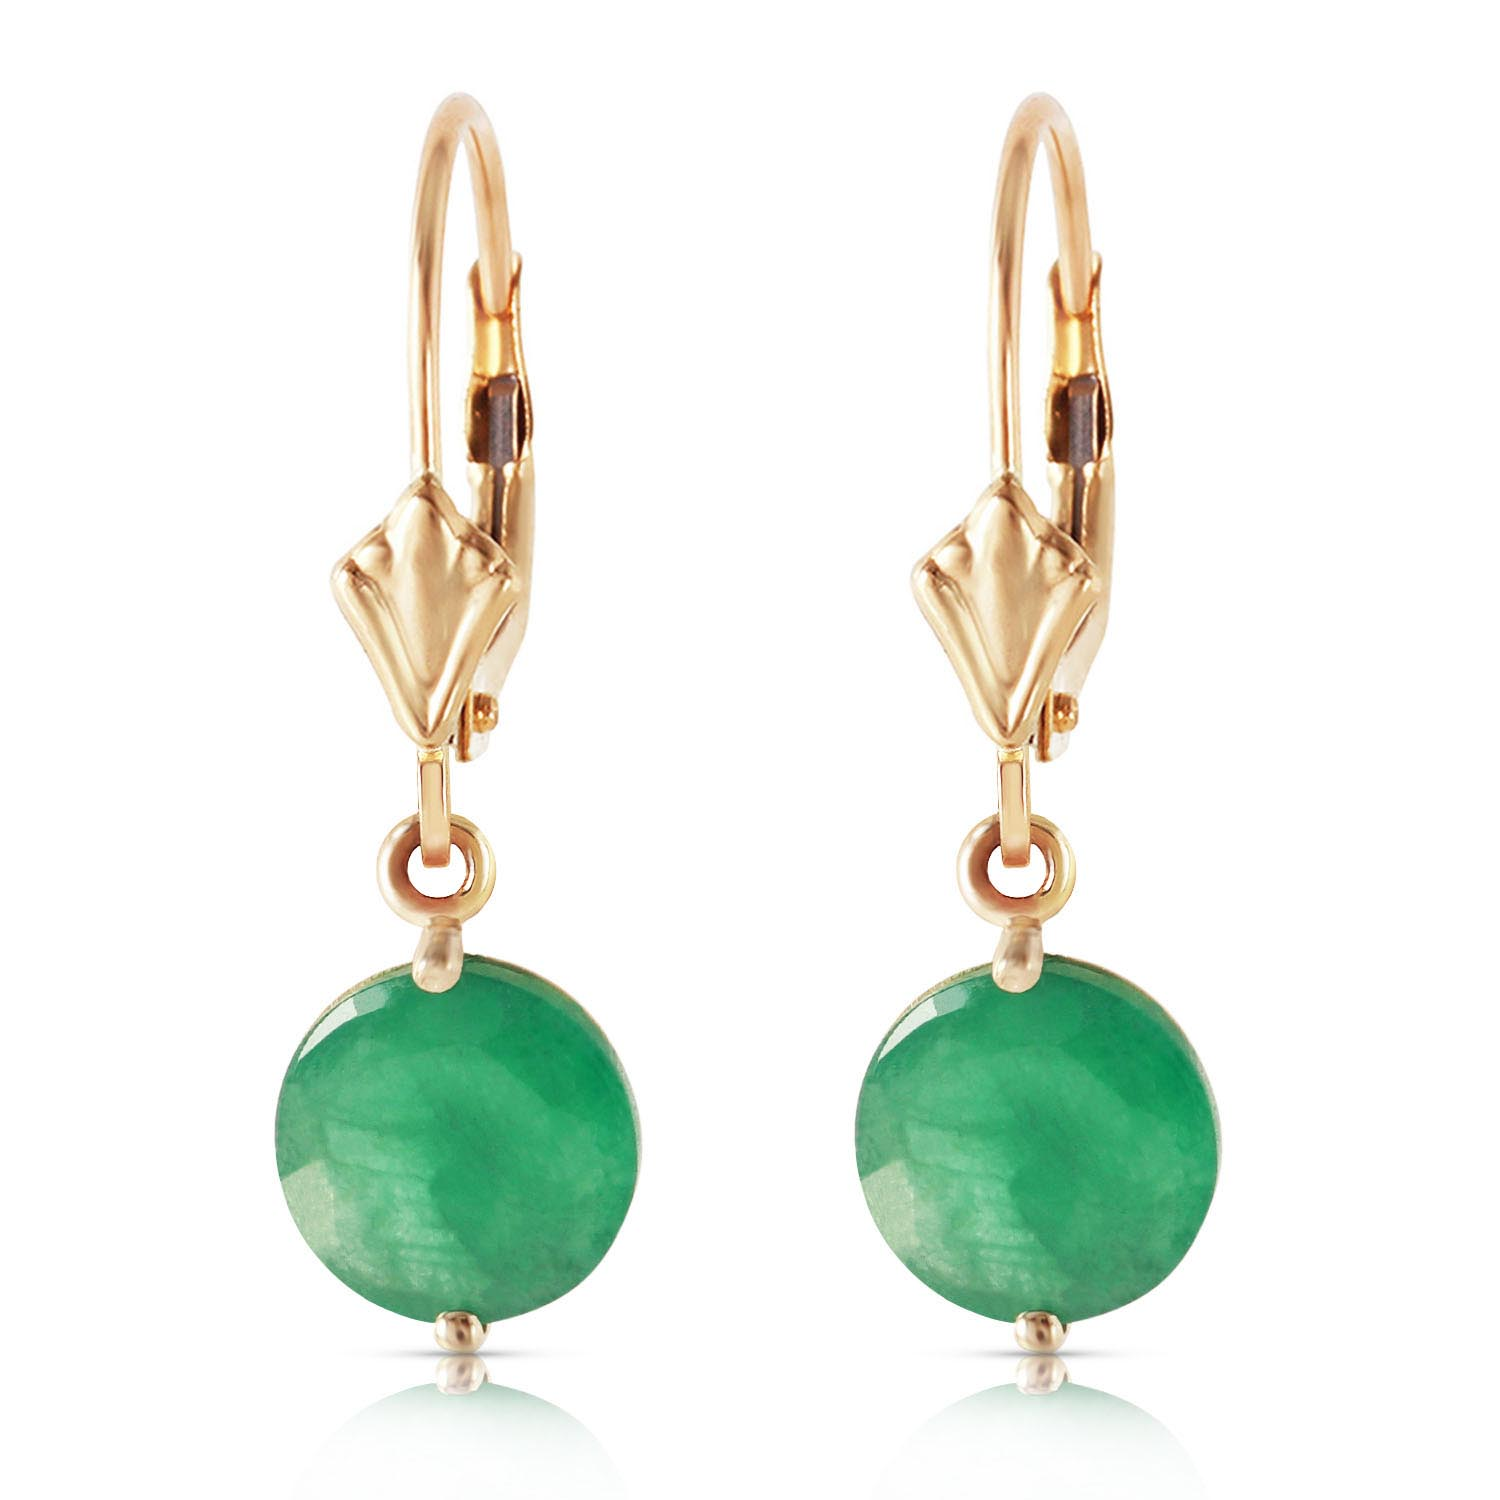 Emerald Drop Earrings 3.3ctw in 9ct Gold